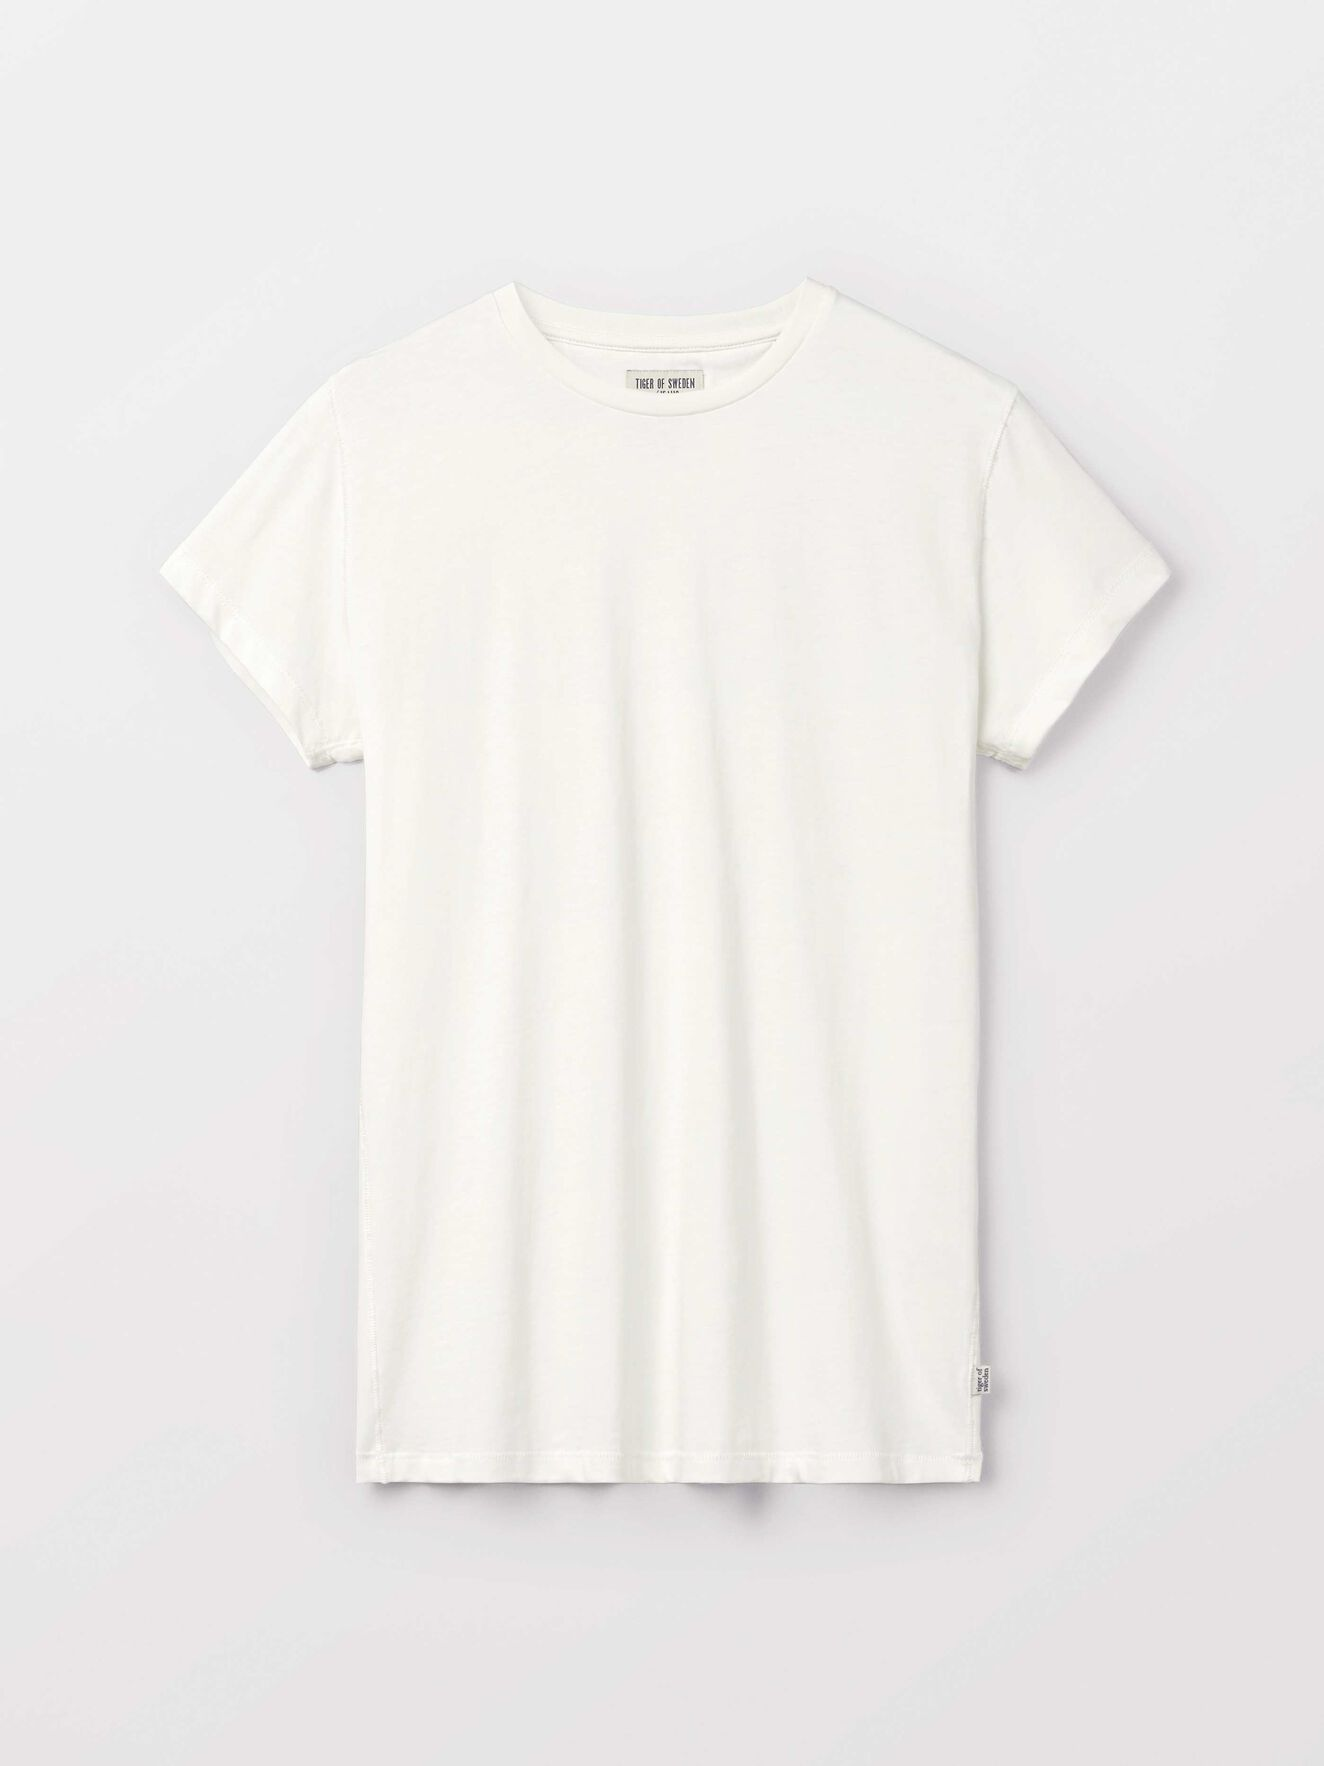 West T-Shirt in White Light from Tiger of Sweden